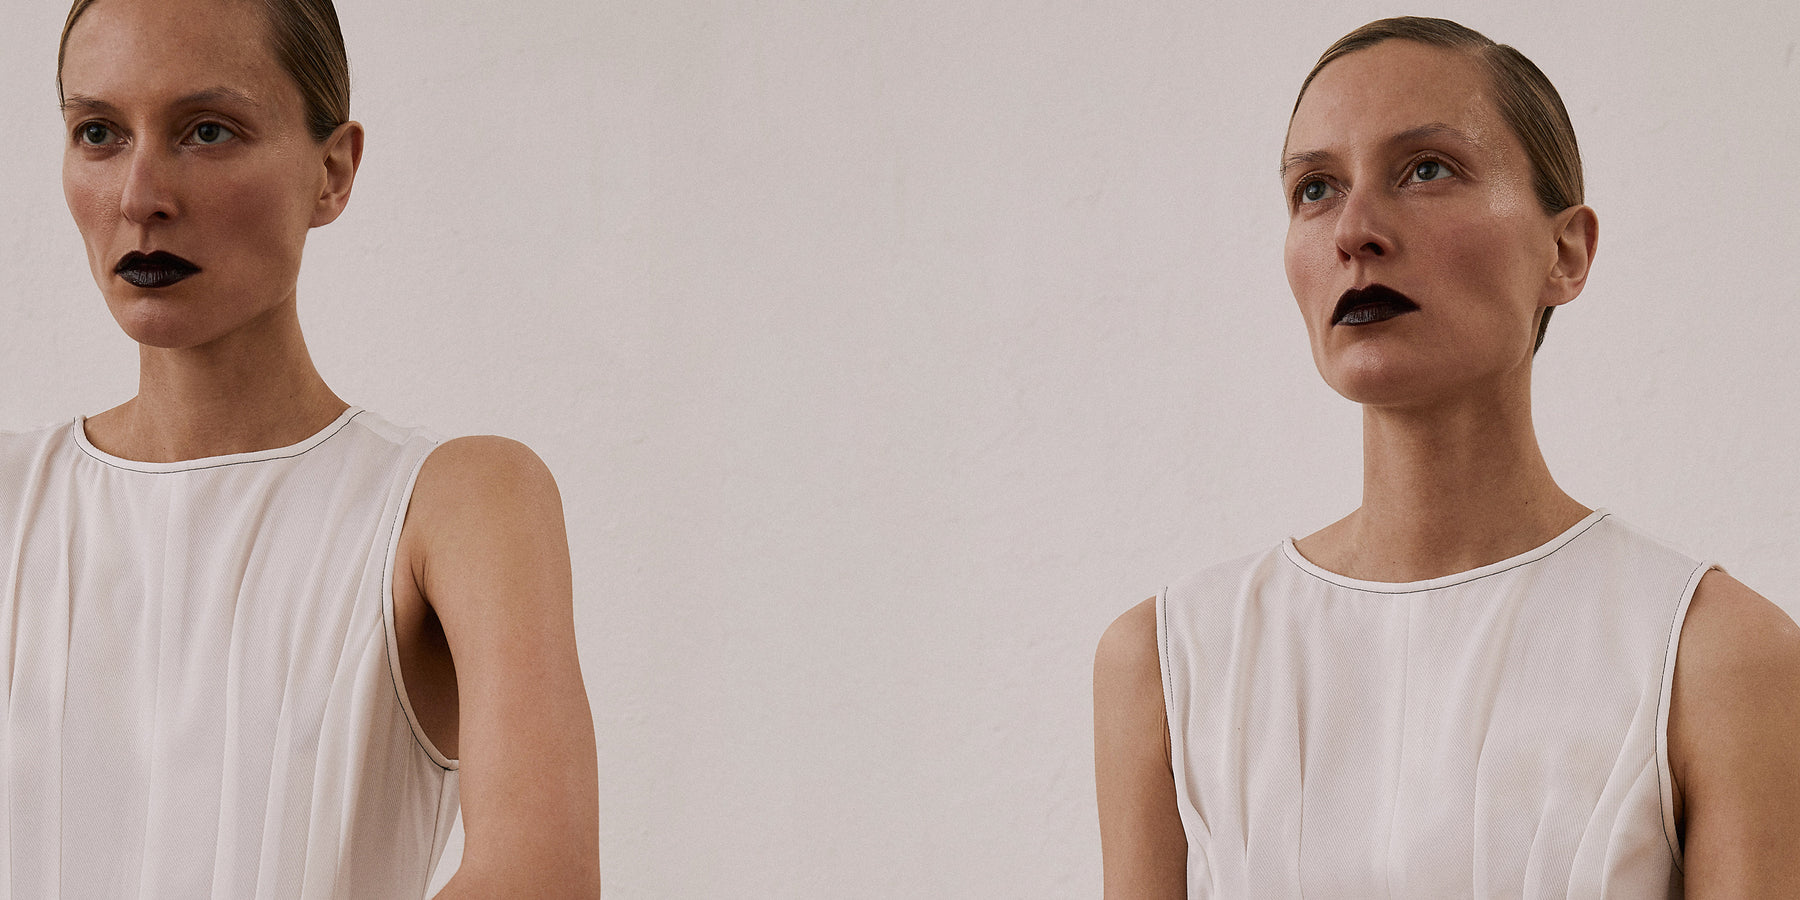 Double Vision: A Referential Spring Wardrobe from MM6 Maison Margiela